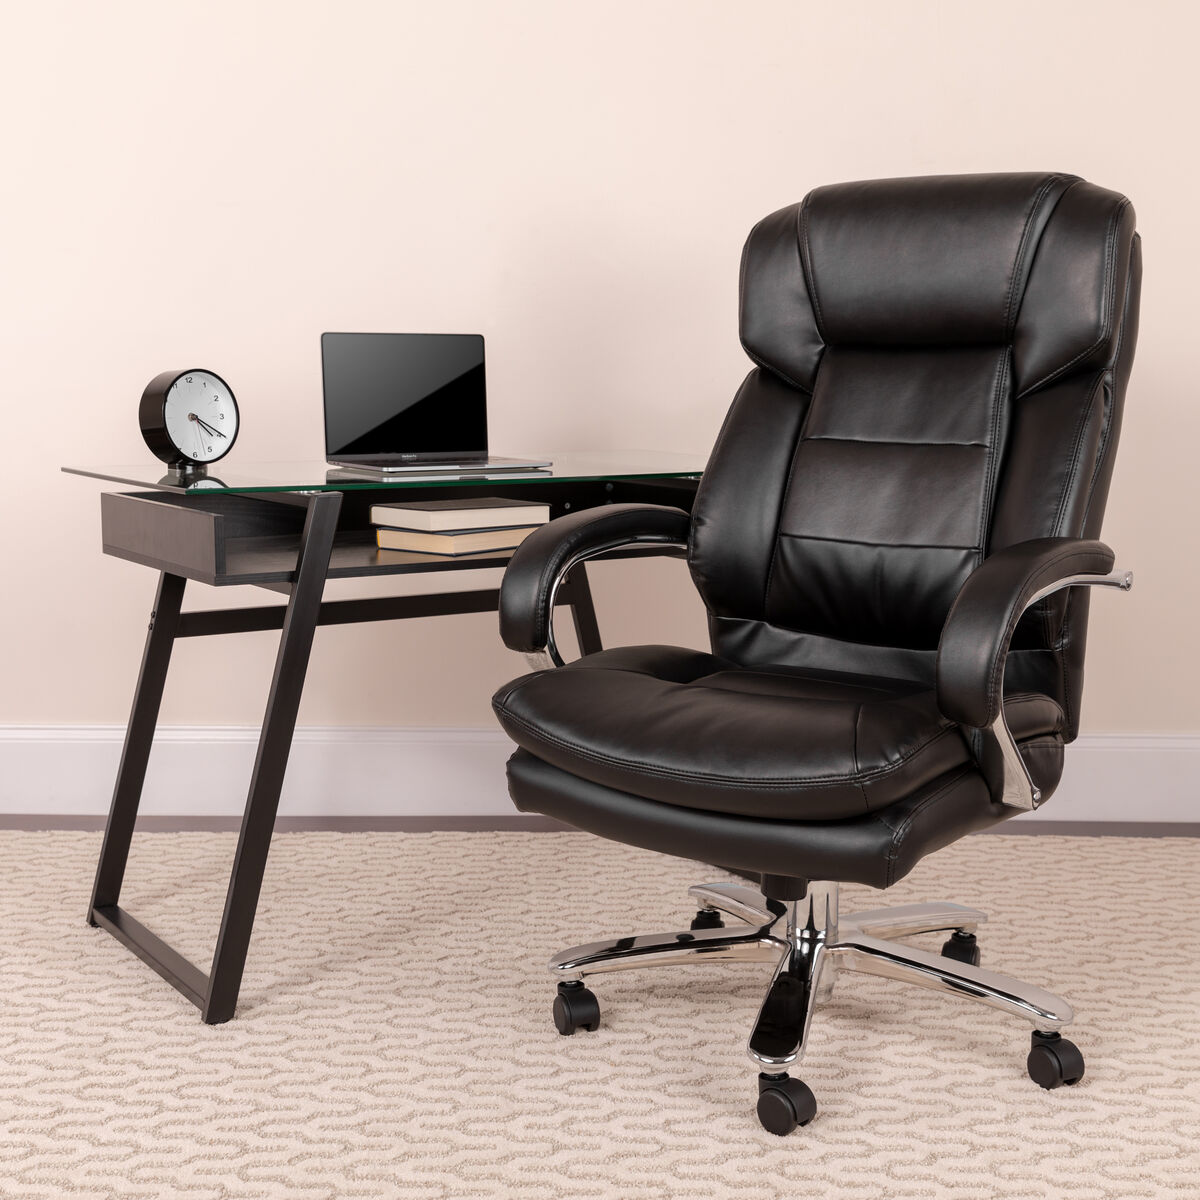 Fine Big Tall Office Chair Black Leather Swivel Executive Desk Chair With Wheels Download Free Architecture Designs Viewormadebymaigaardcom